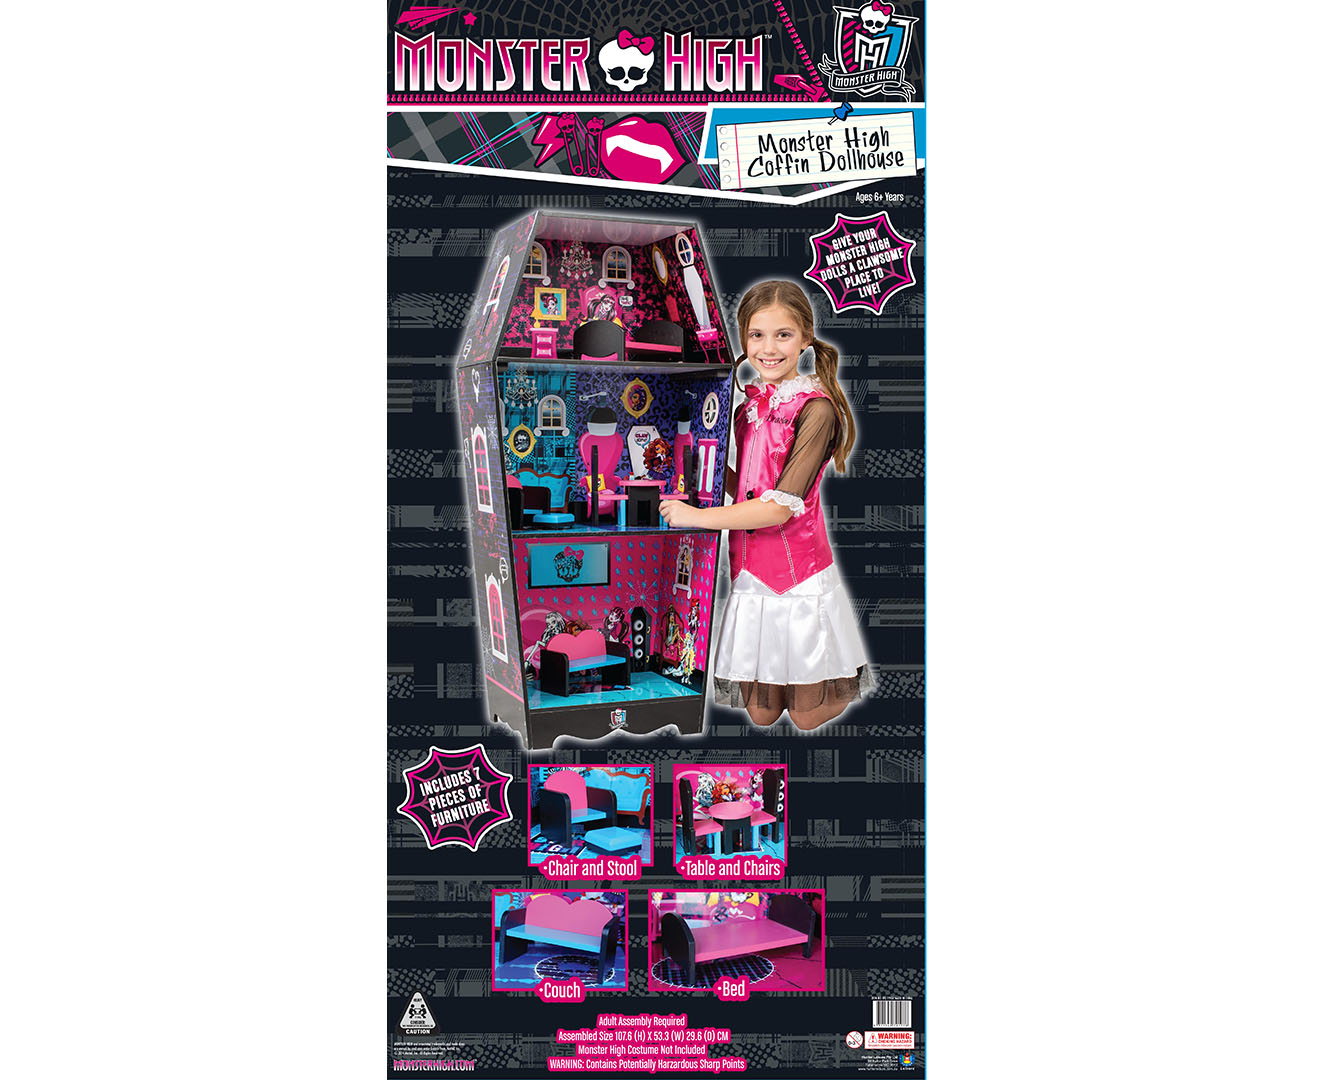 Monster High Coffin Doll House Catchcomau